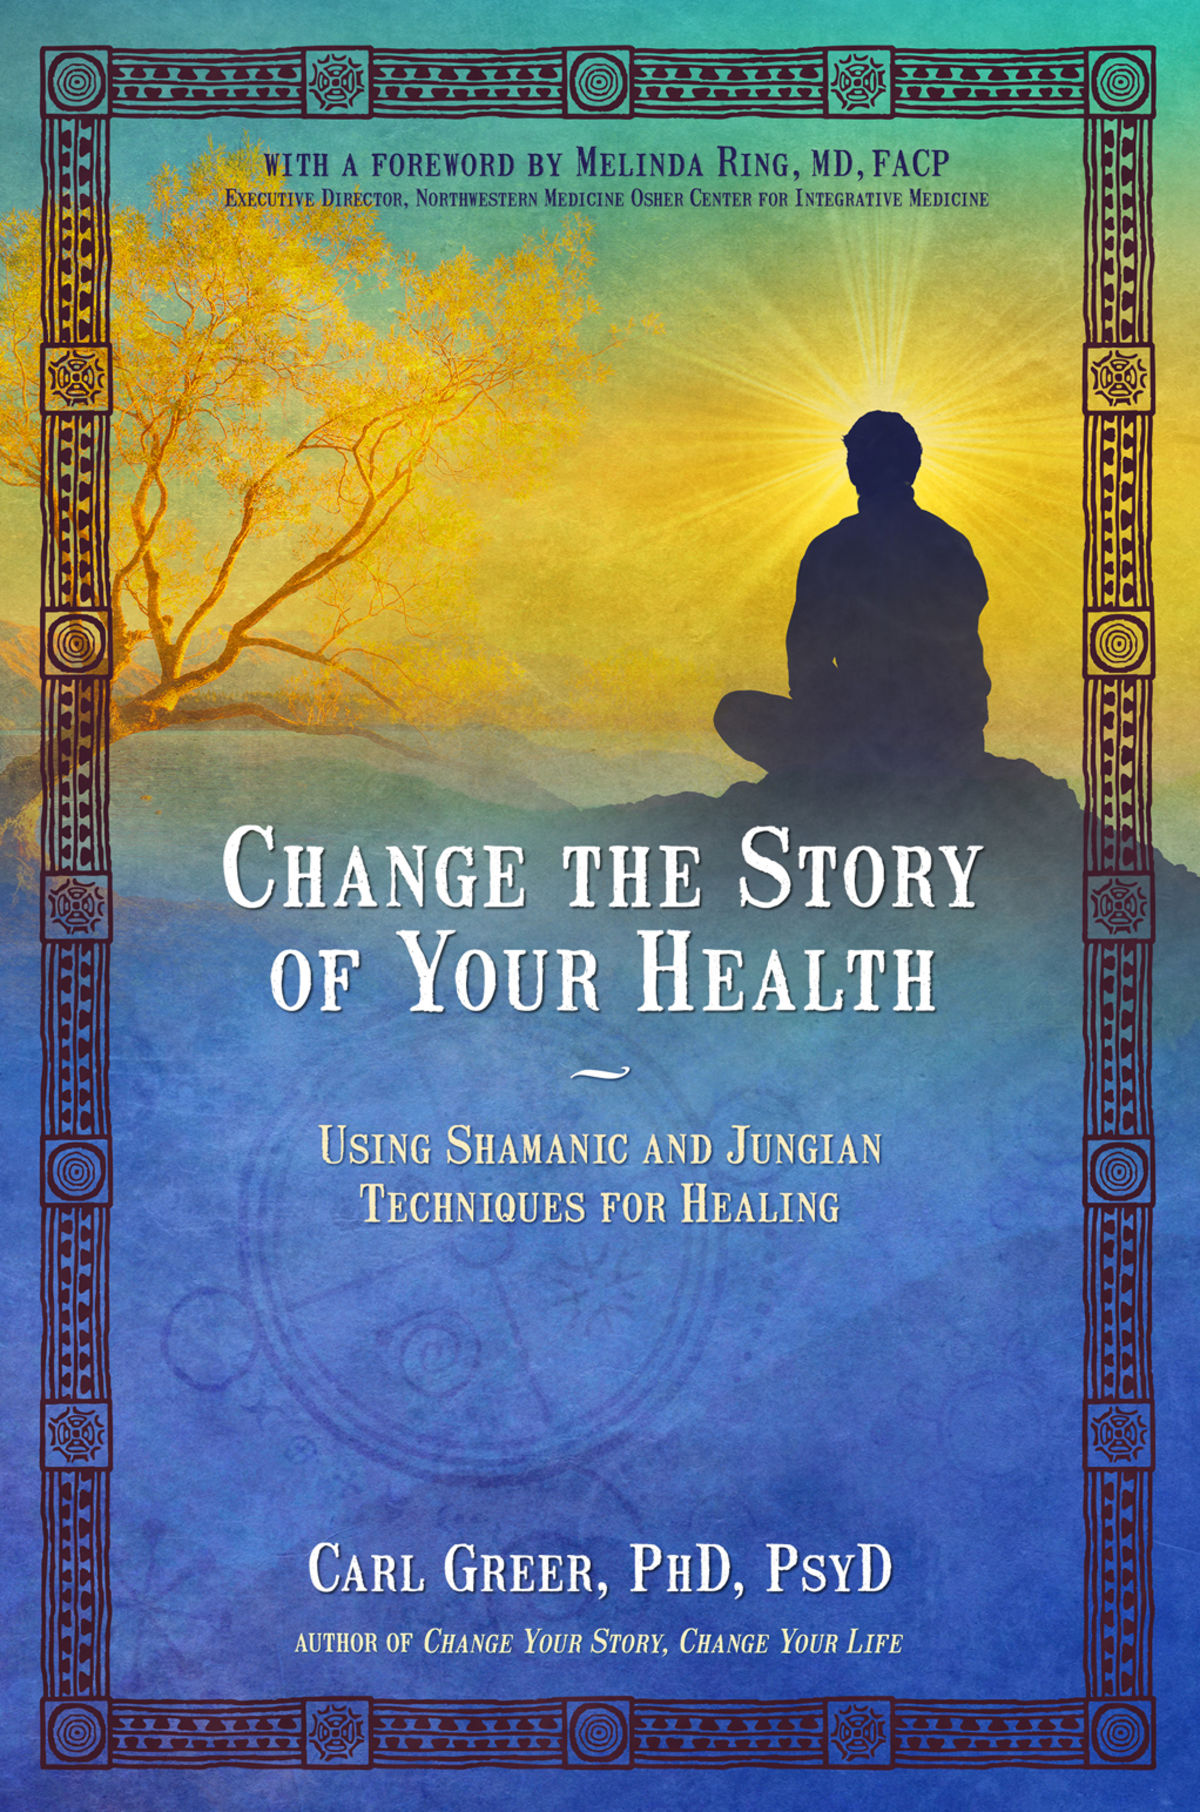 Change the Story of Your Health | Psychology Today